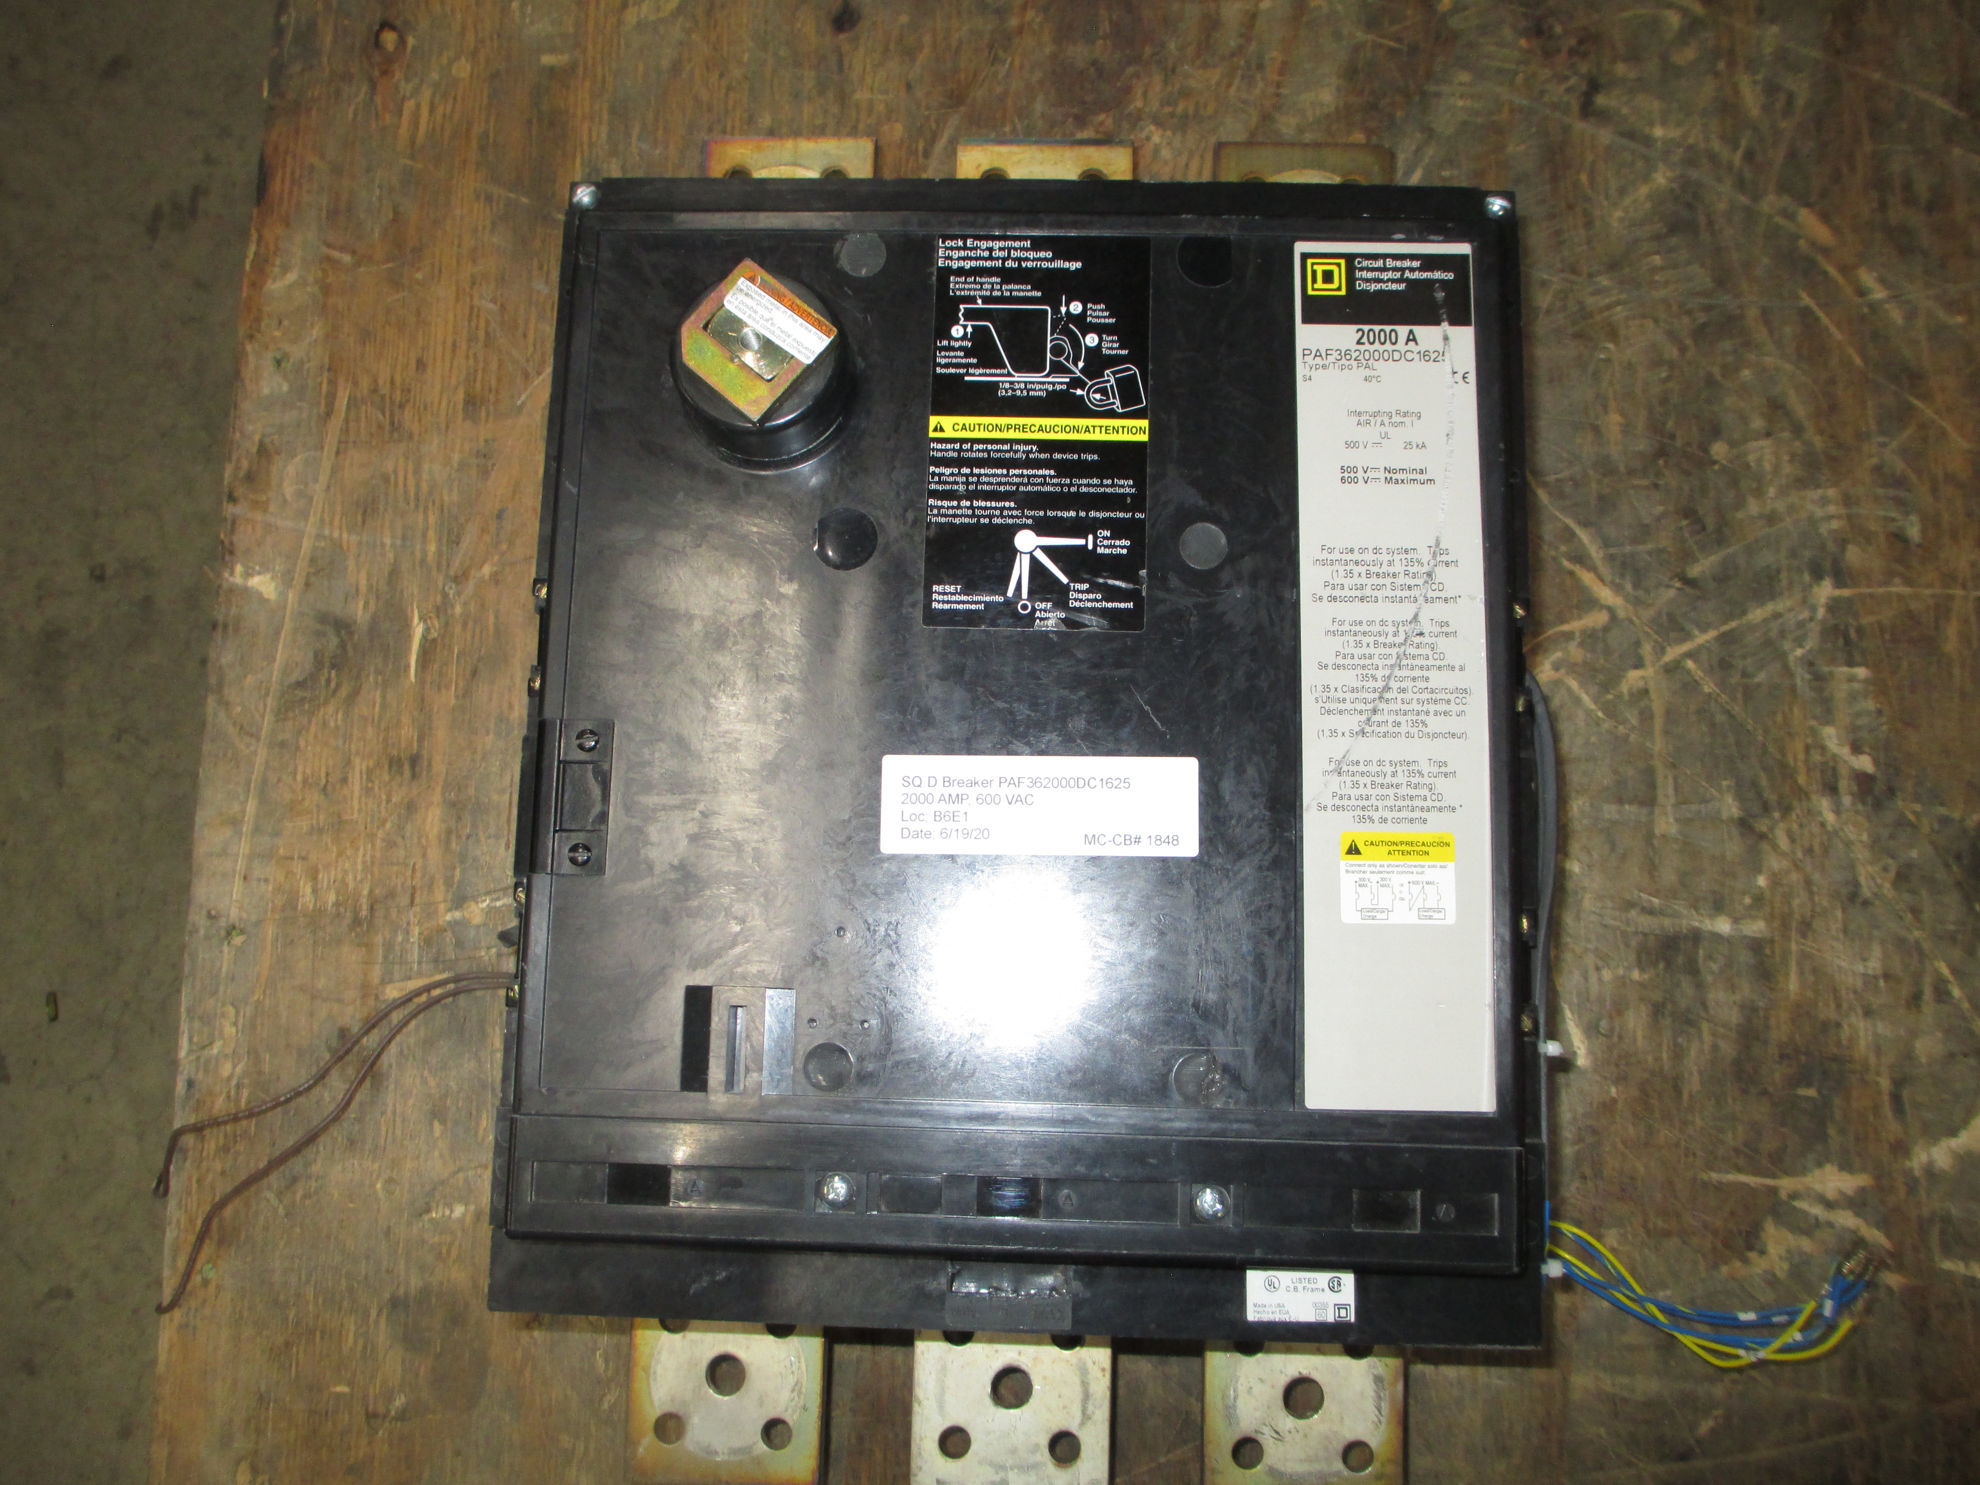 Picture of PAF362000DC1625 Square D Breaker 2000 Amp 500-600 VDC *No Handle*